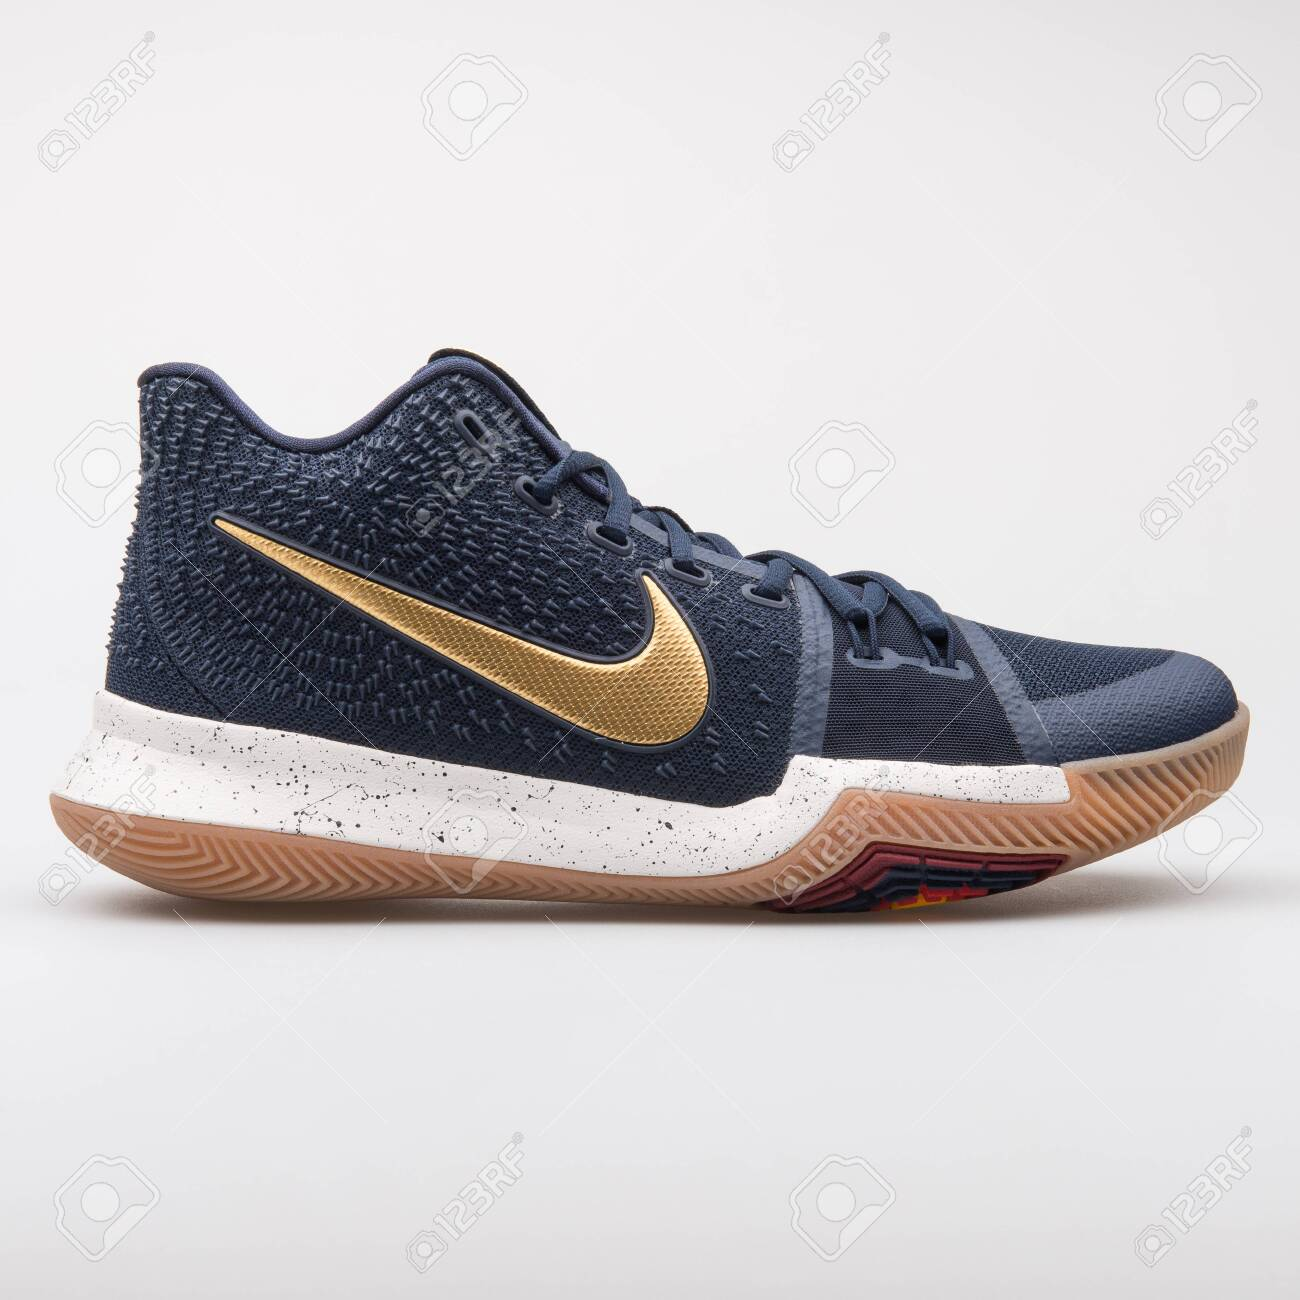 info for 377f7 a0379 VIENNA, AUSTRIA - AUGUST 7, 2017: Nike Kyrie 3 blue and gold..